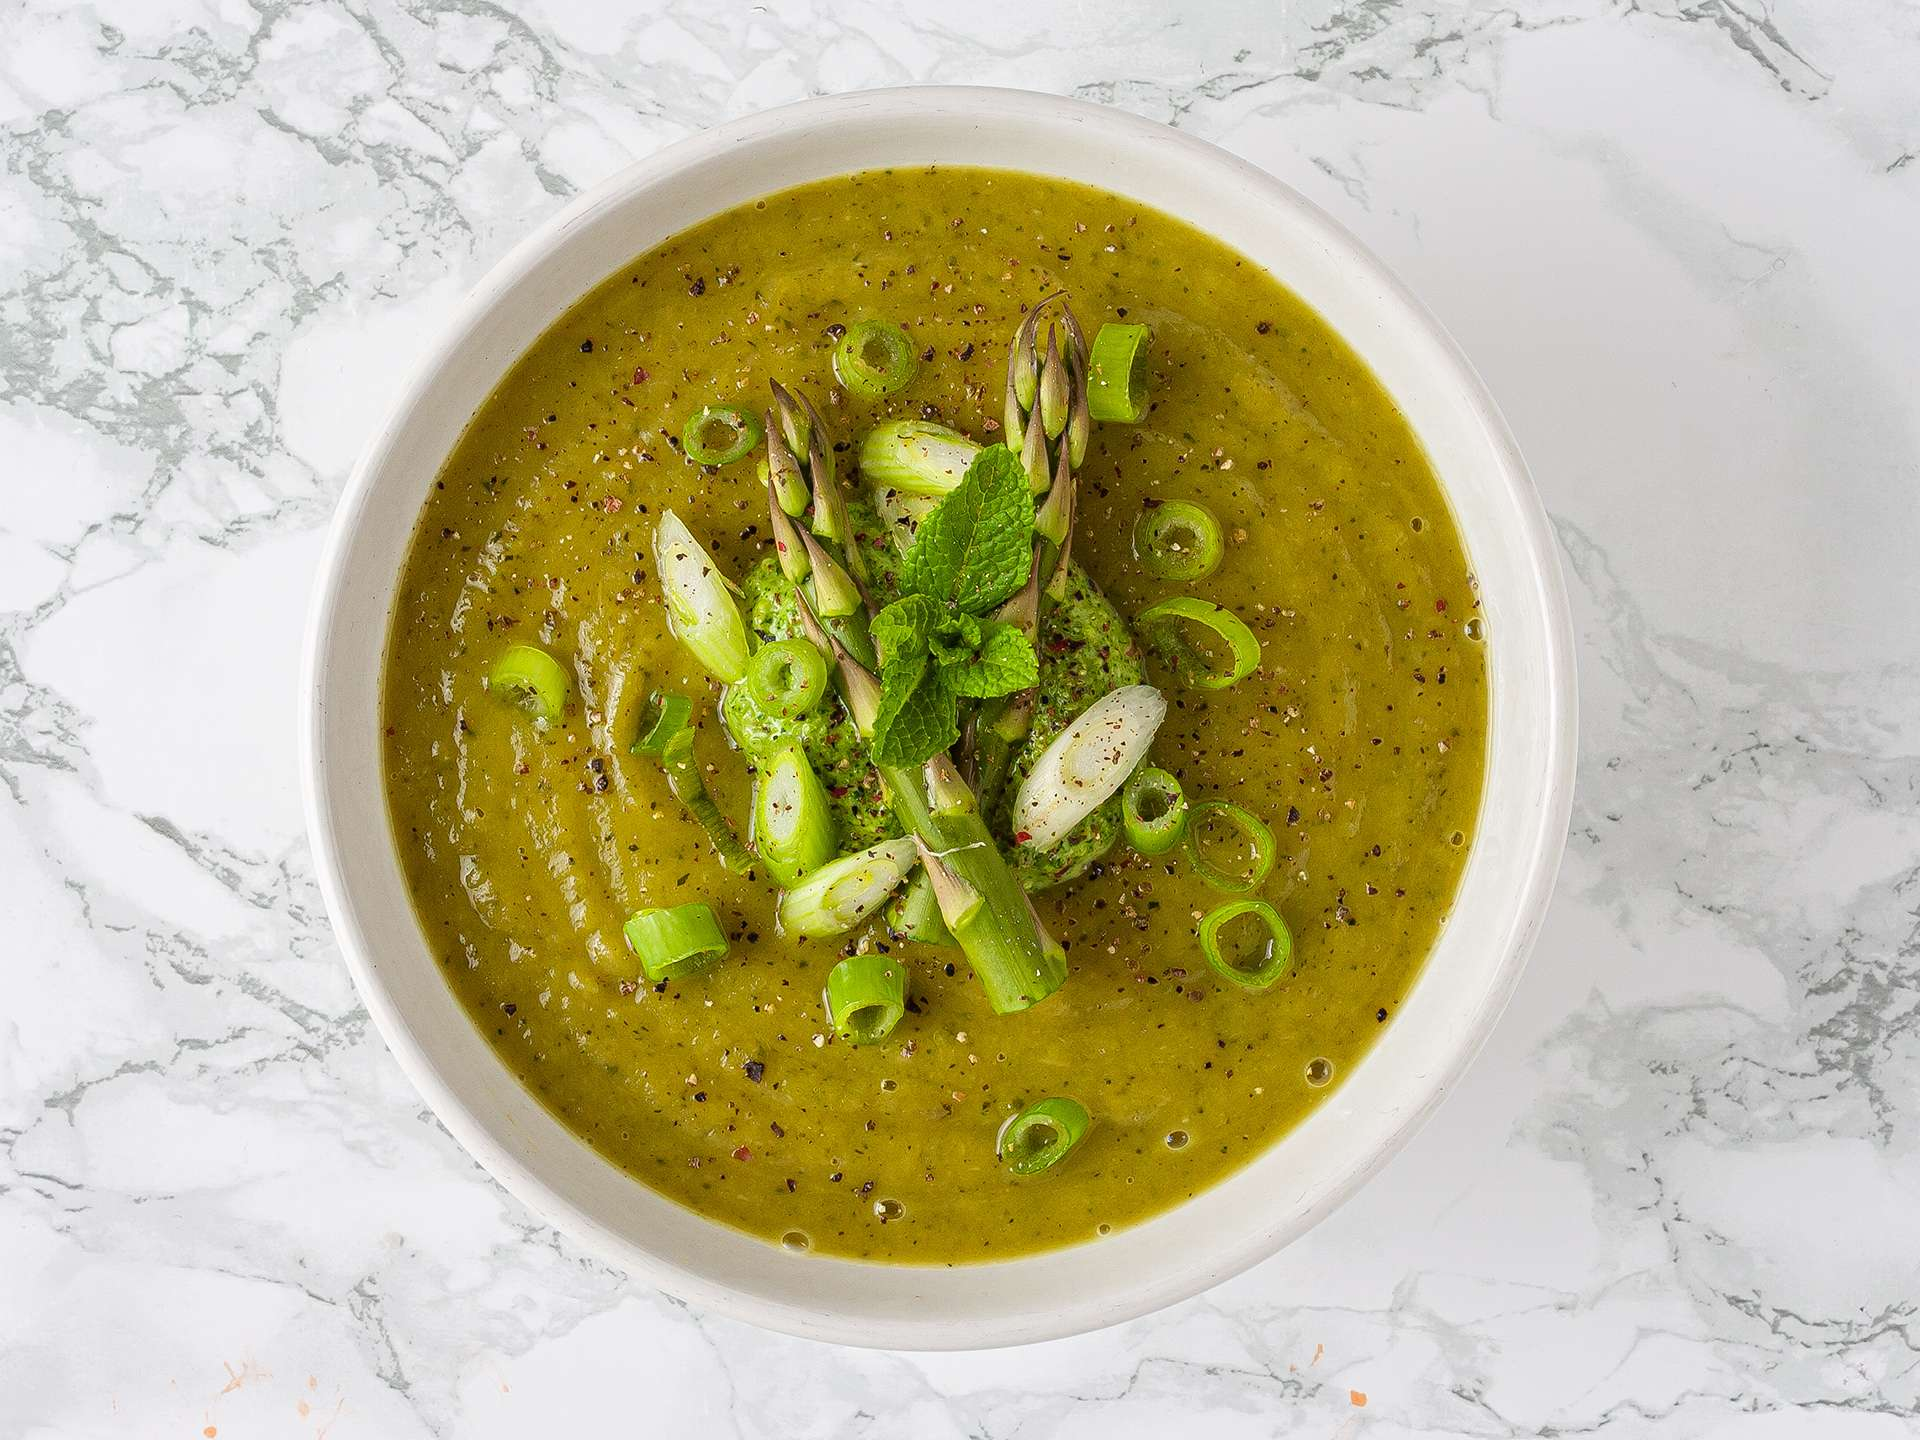 creamy asparagus and zucchini soup topped with watercress pesto, mint, and spring onions